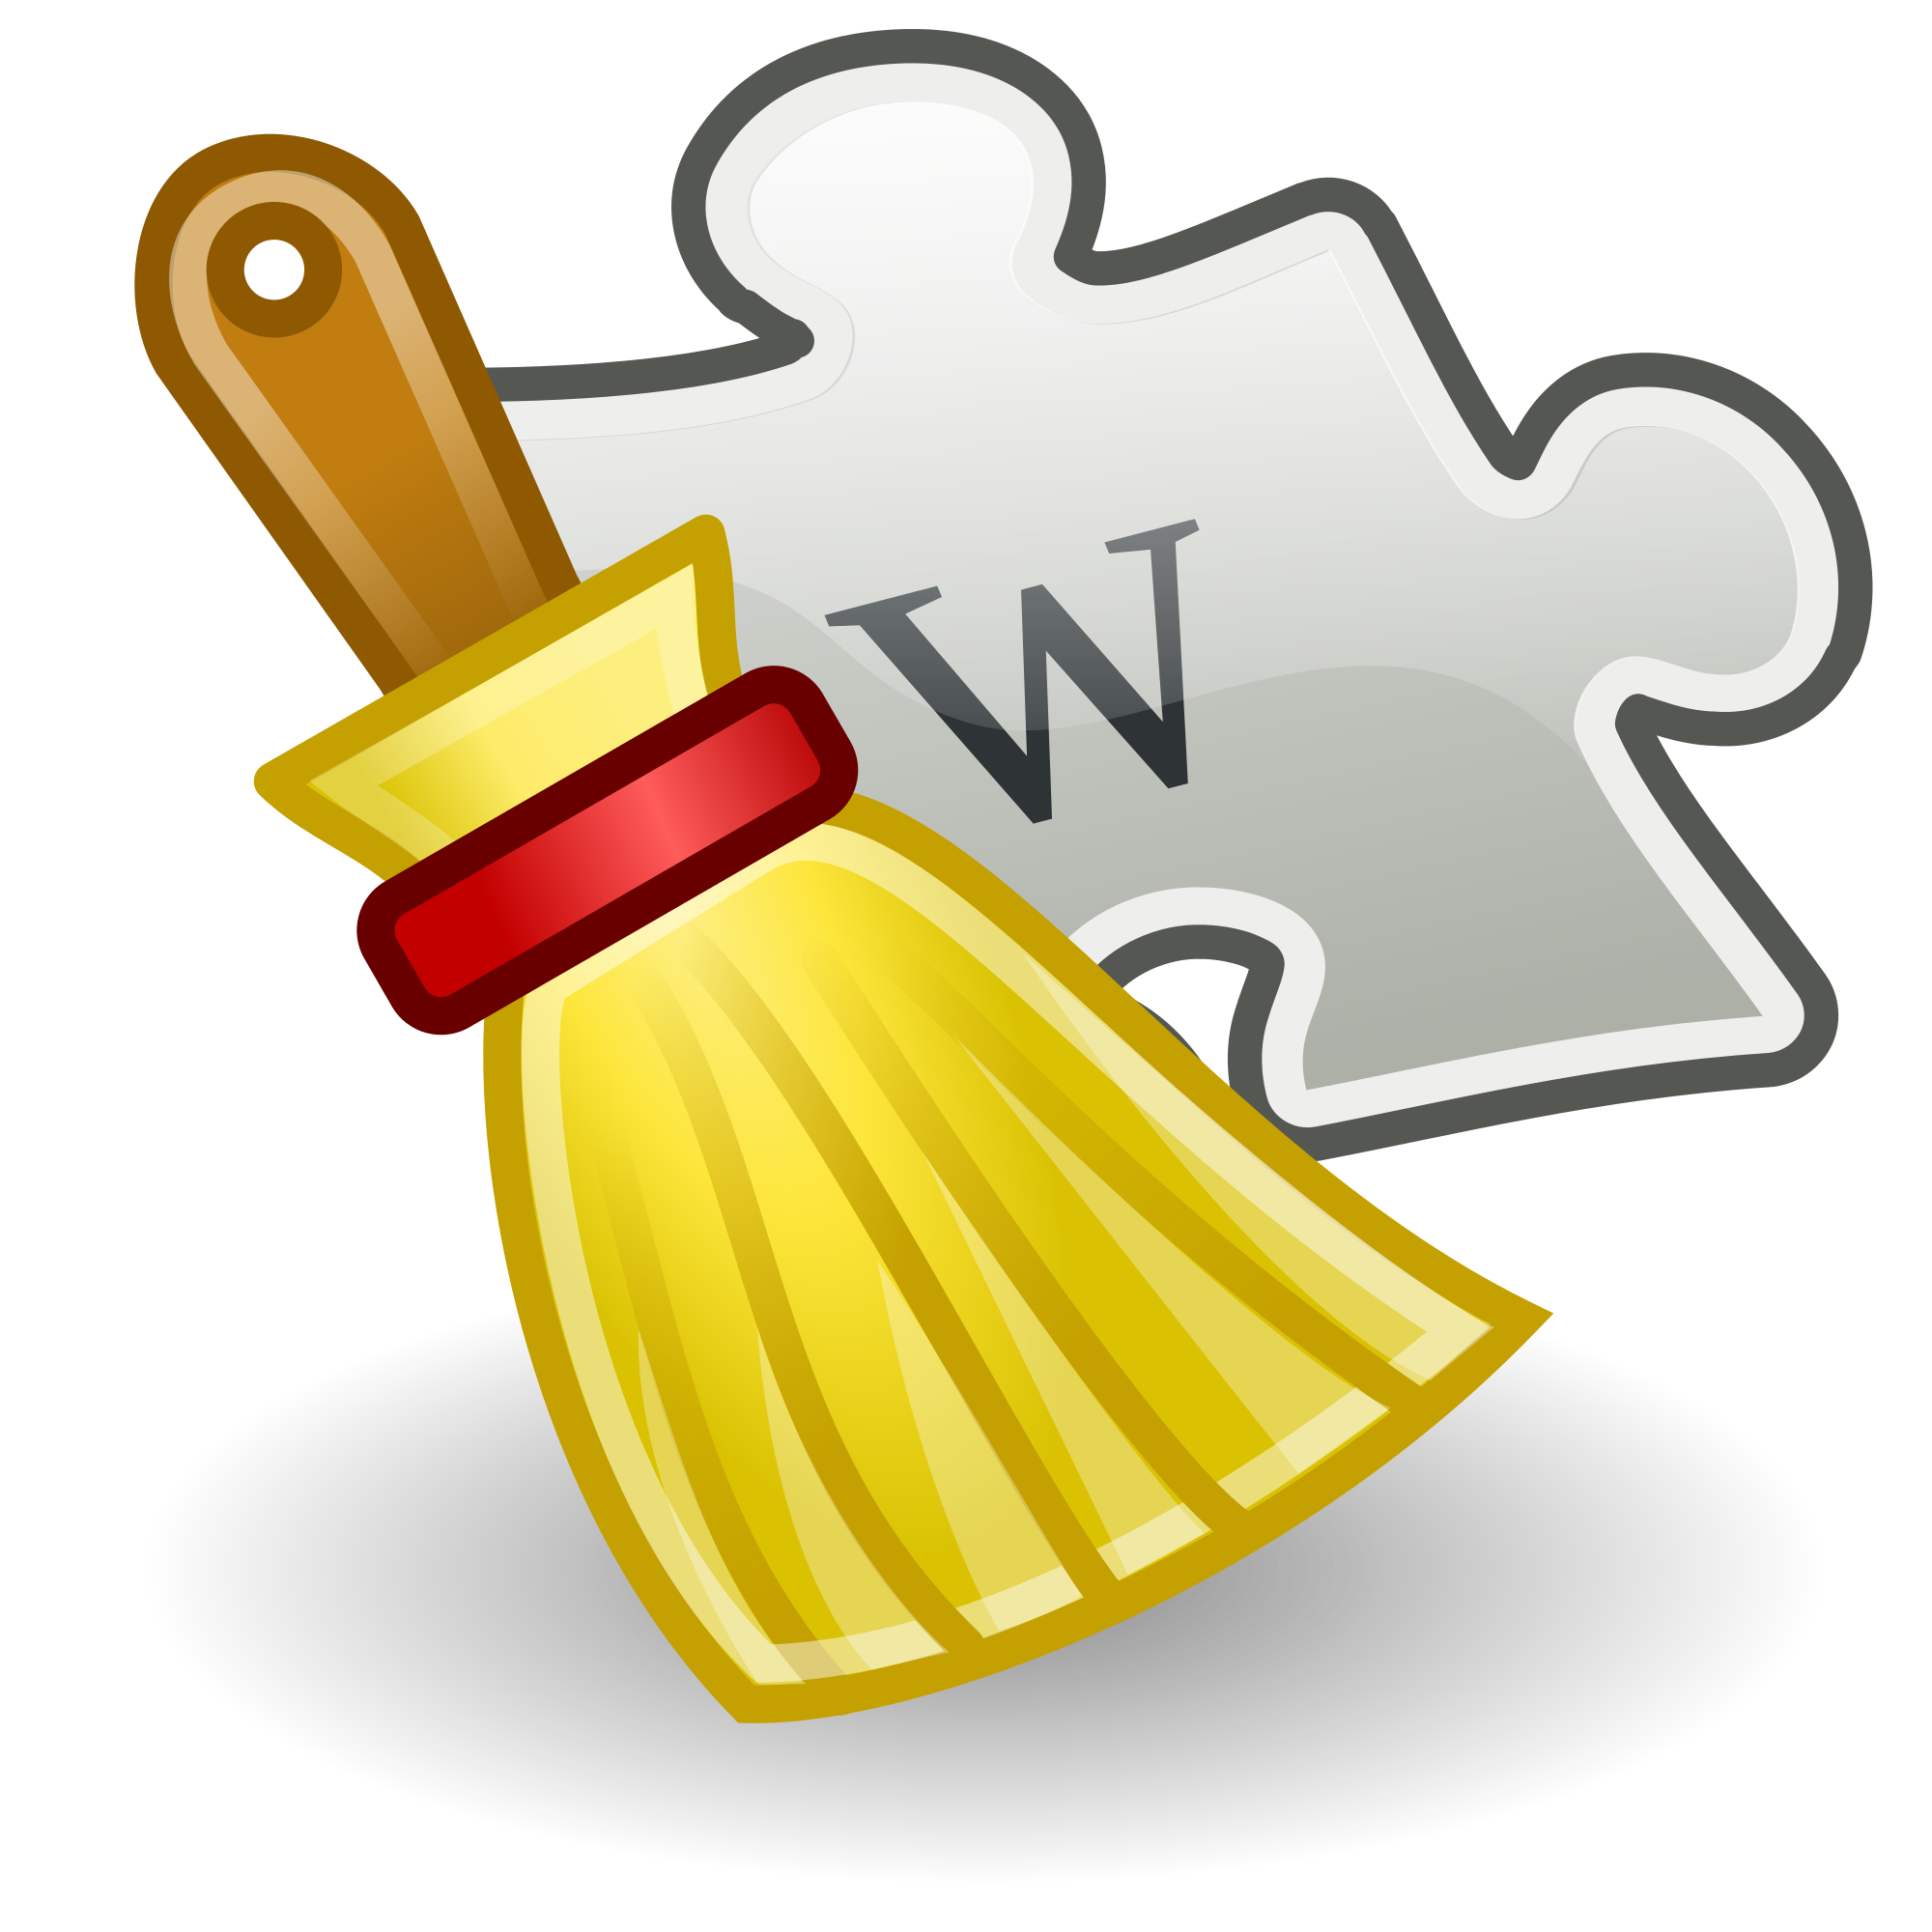 Svg wiki. File broom wikimedia commons